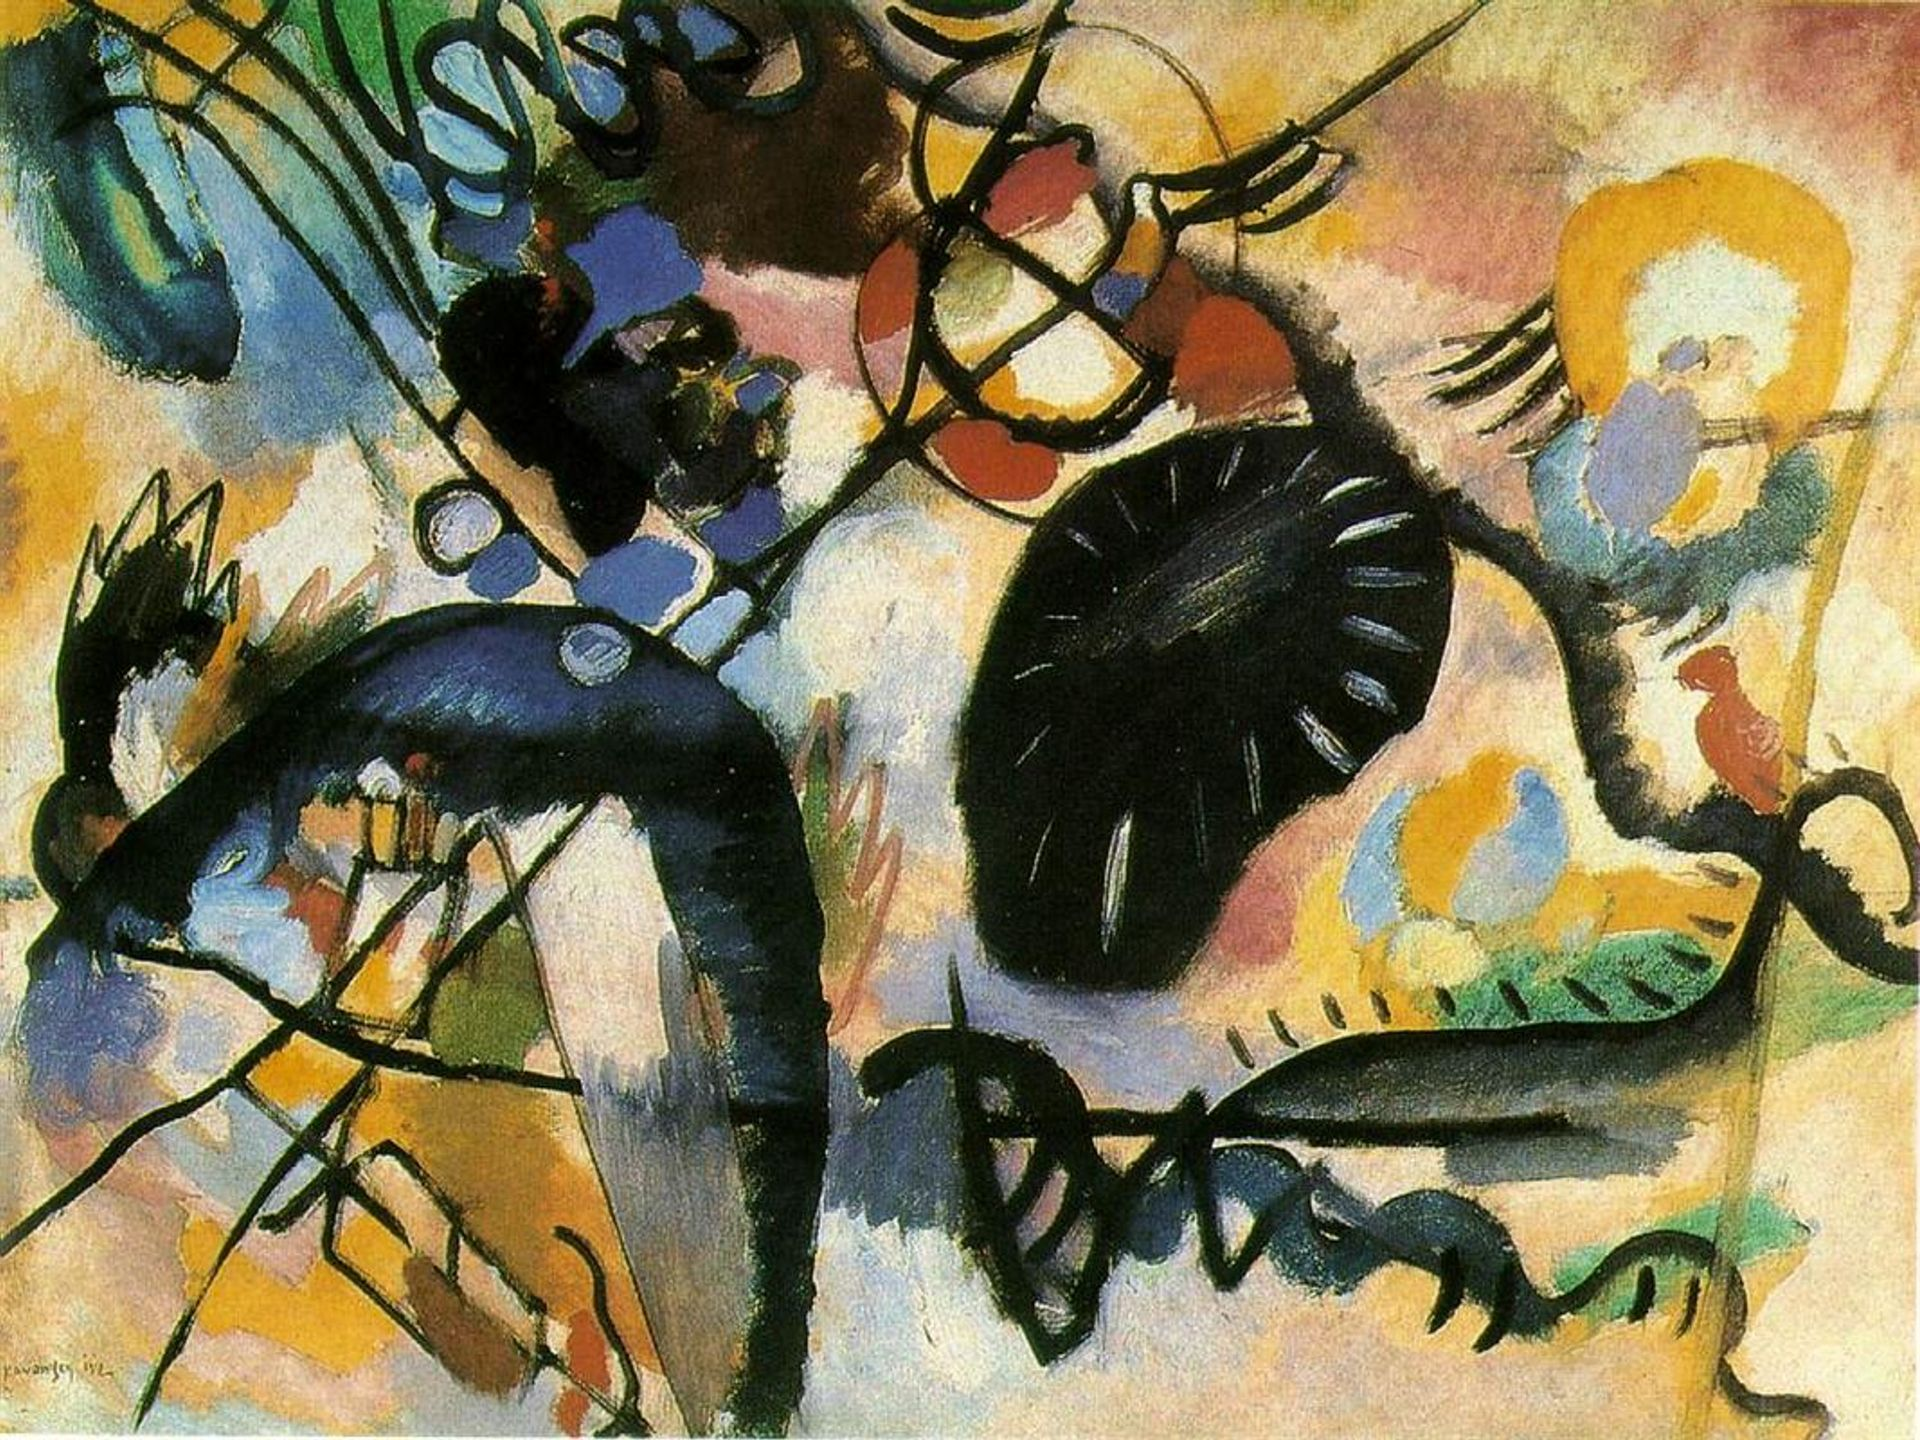 Wassily Kandinsky's Black Spot (1917) is part of the exhibition at the King Fahd Cultural Centre